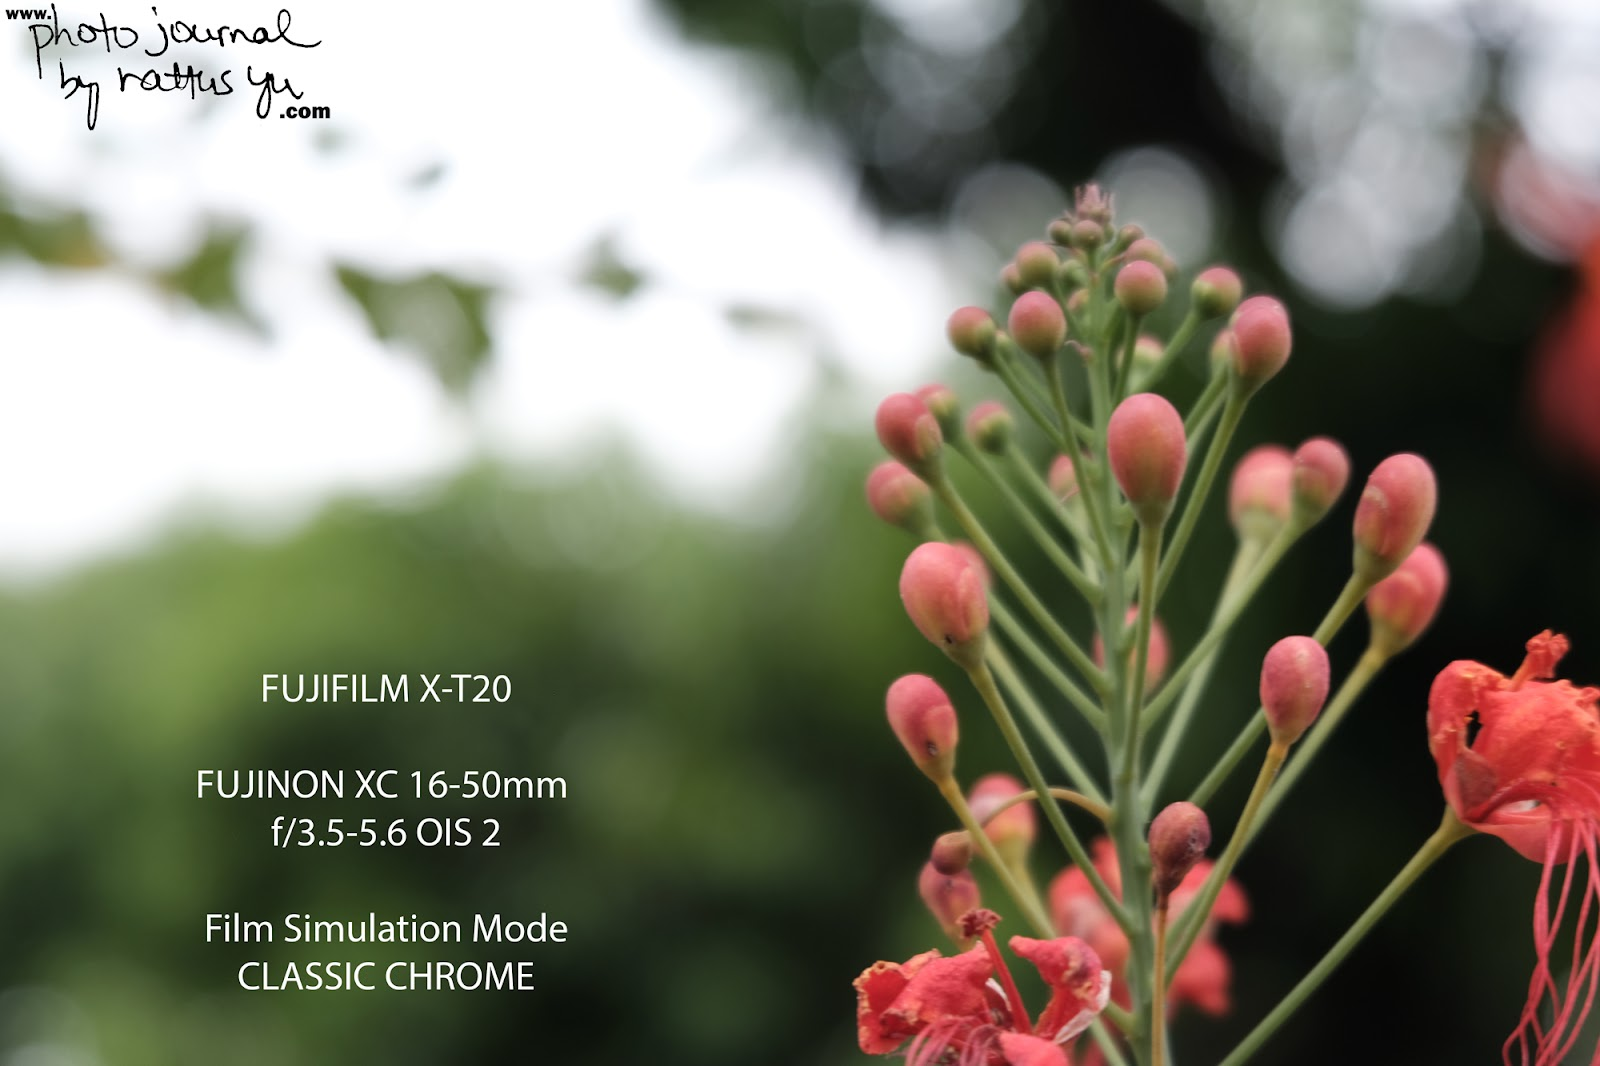 FUJINON Super EBC XC 16-50mm f/3.5-5.6 OIS 2